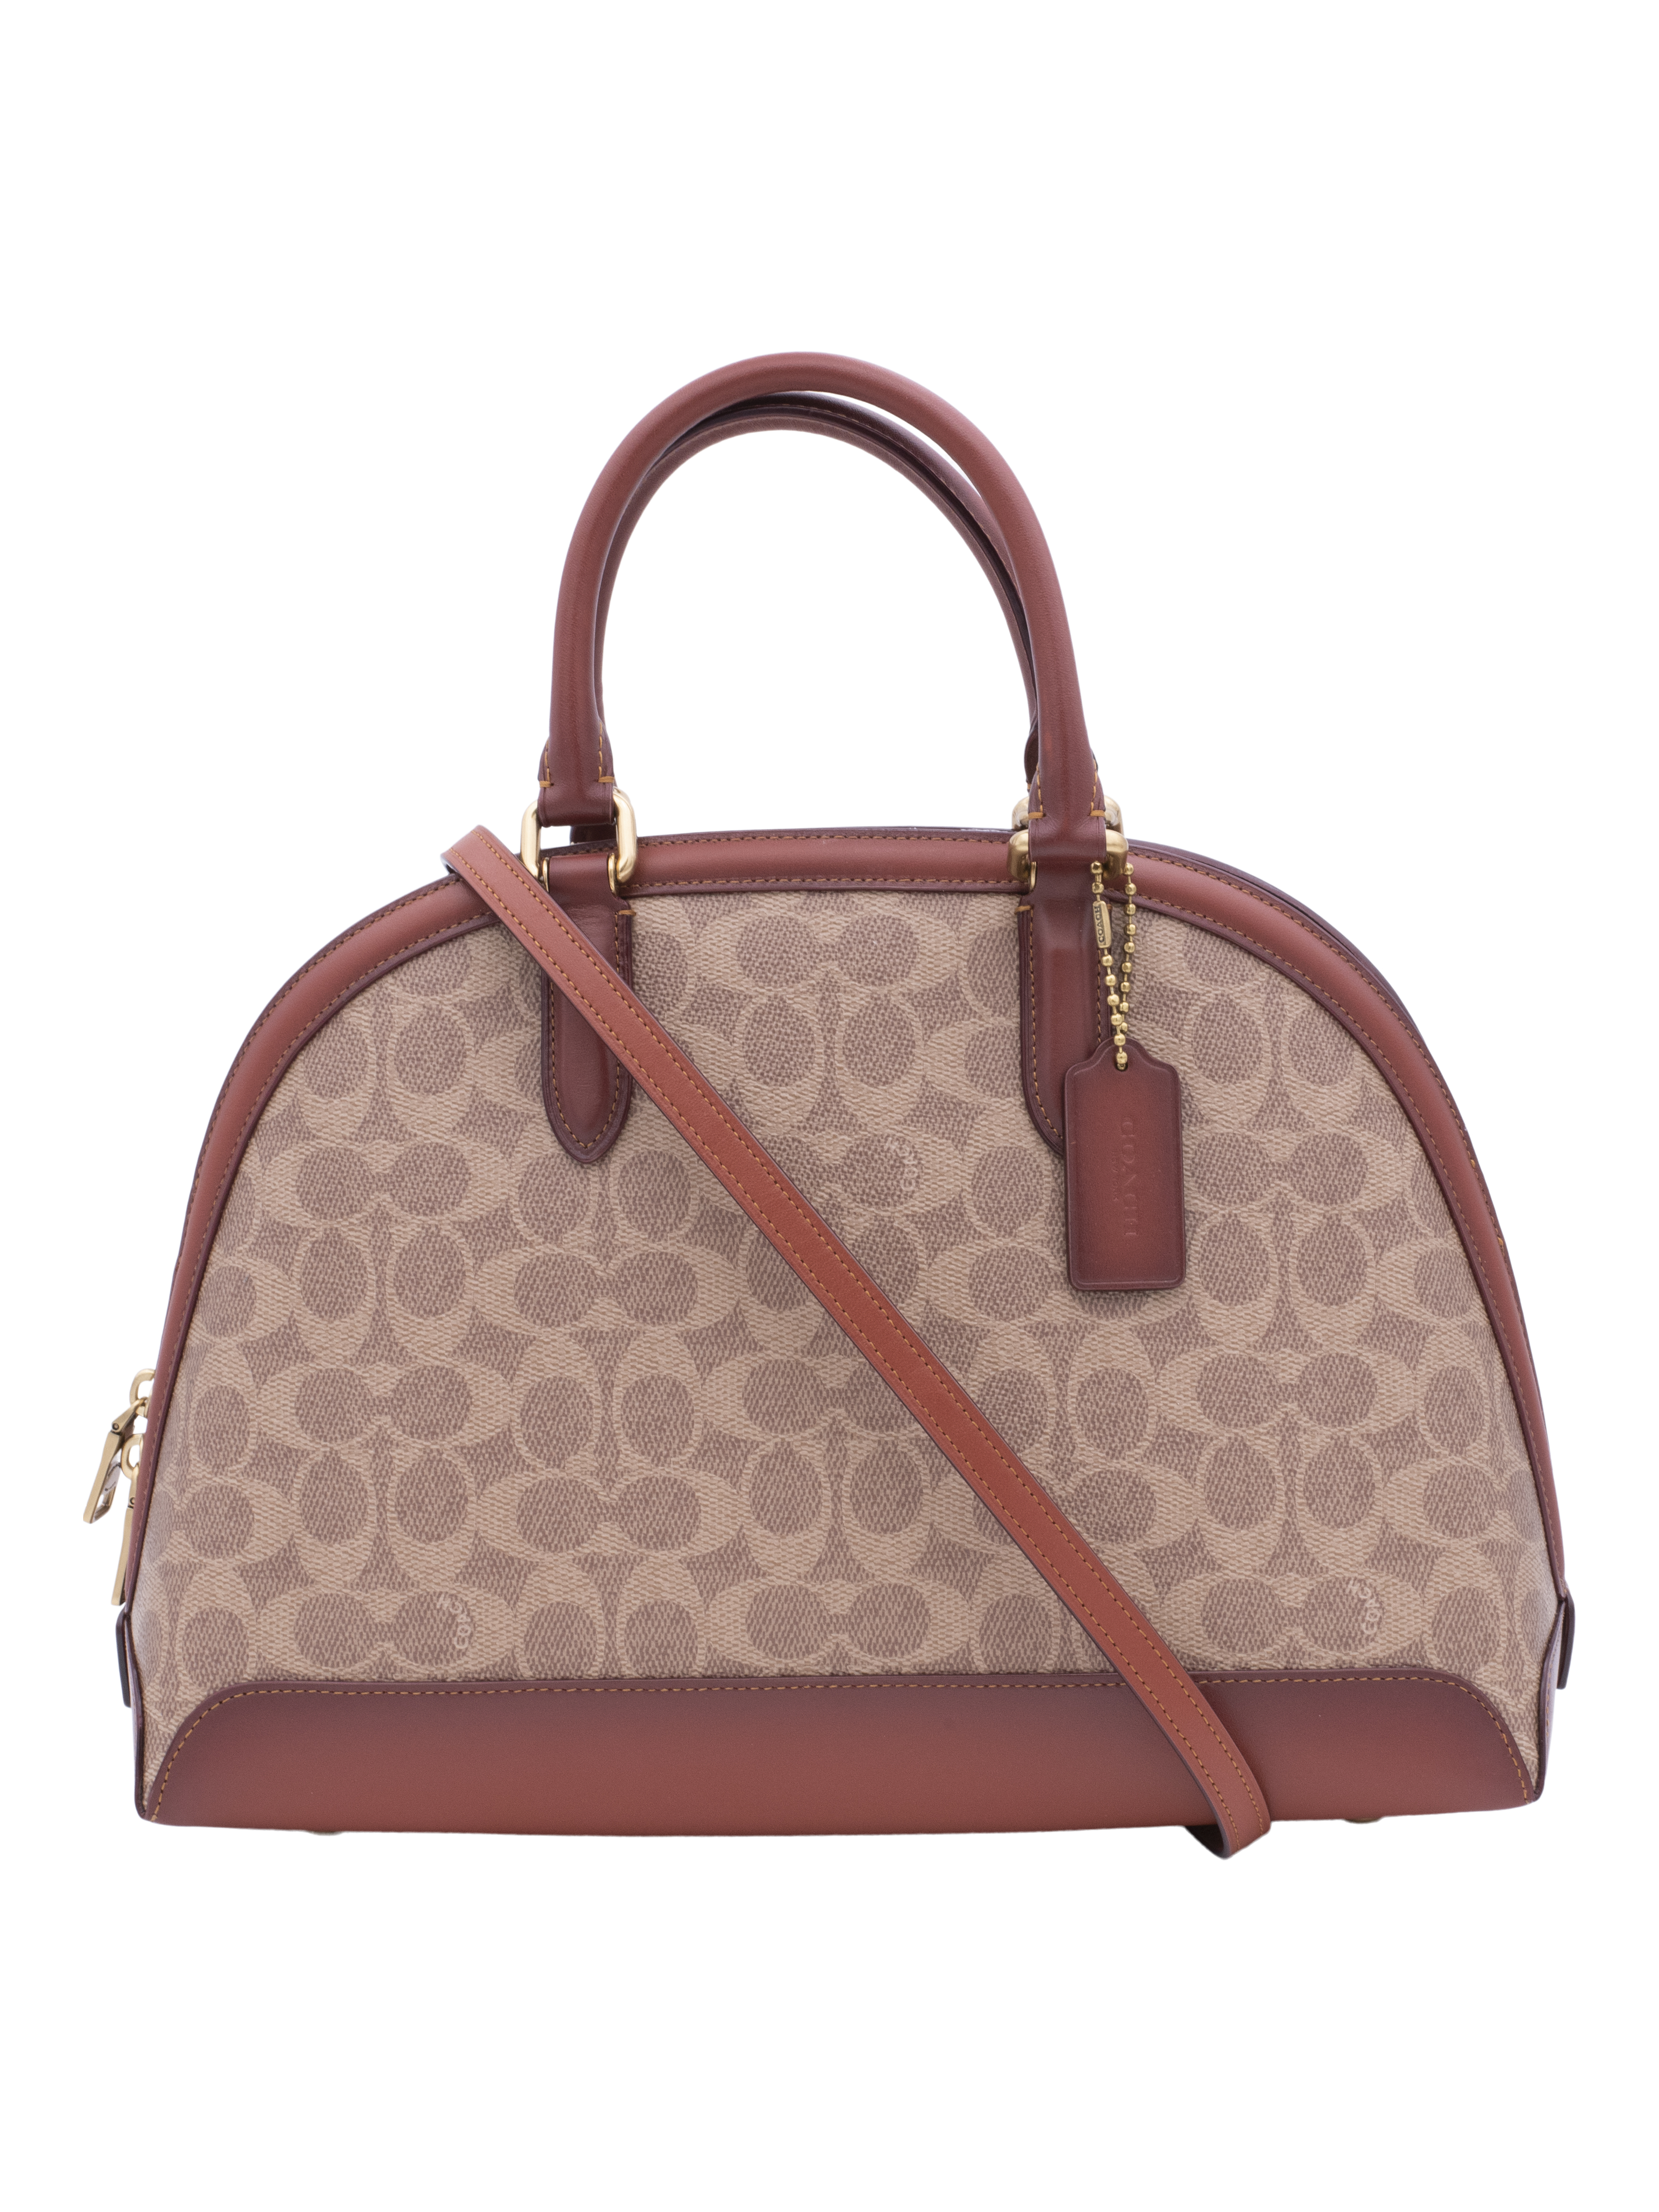 COACH Womens Coated Canvas Signature Quinn Satchel B4/Tan Rust